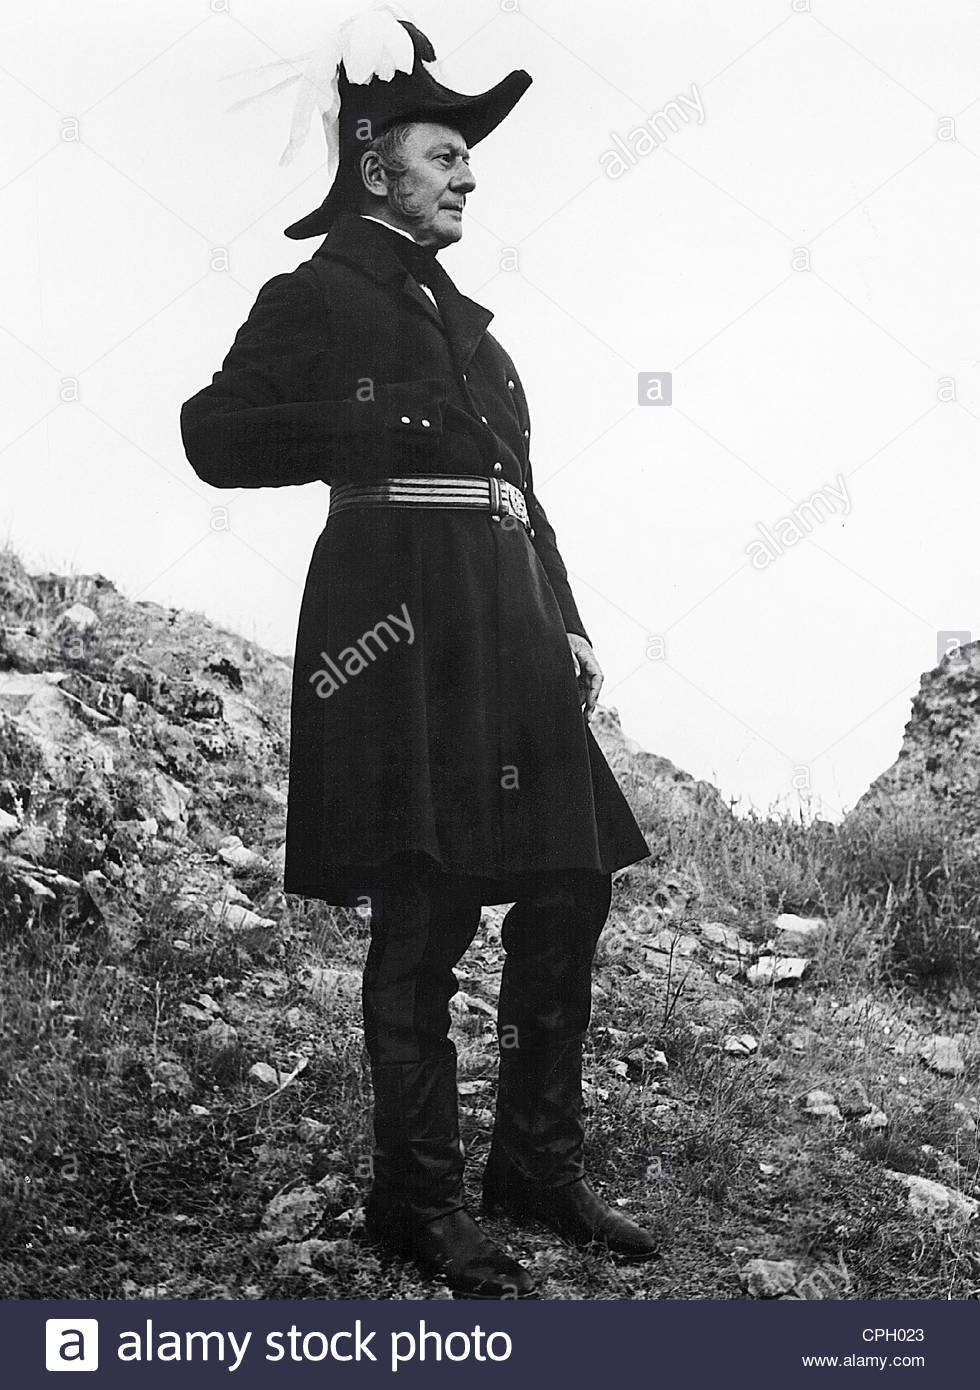 Gielgud, John, 14.4.1904 - 21.5.2000, British actor, during the shooting of the film 'The Charge of the Light - Stock Image